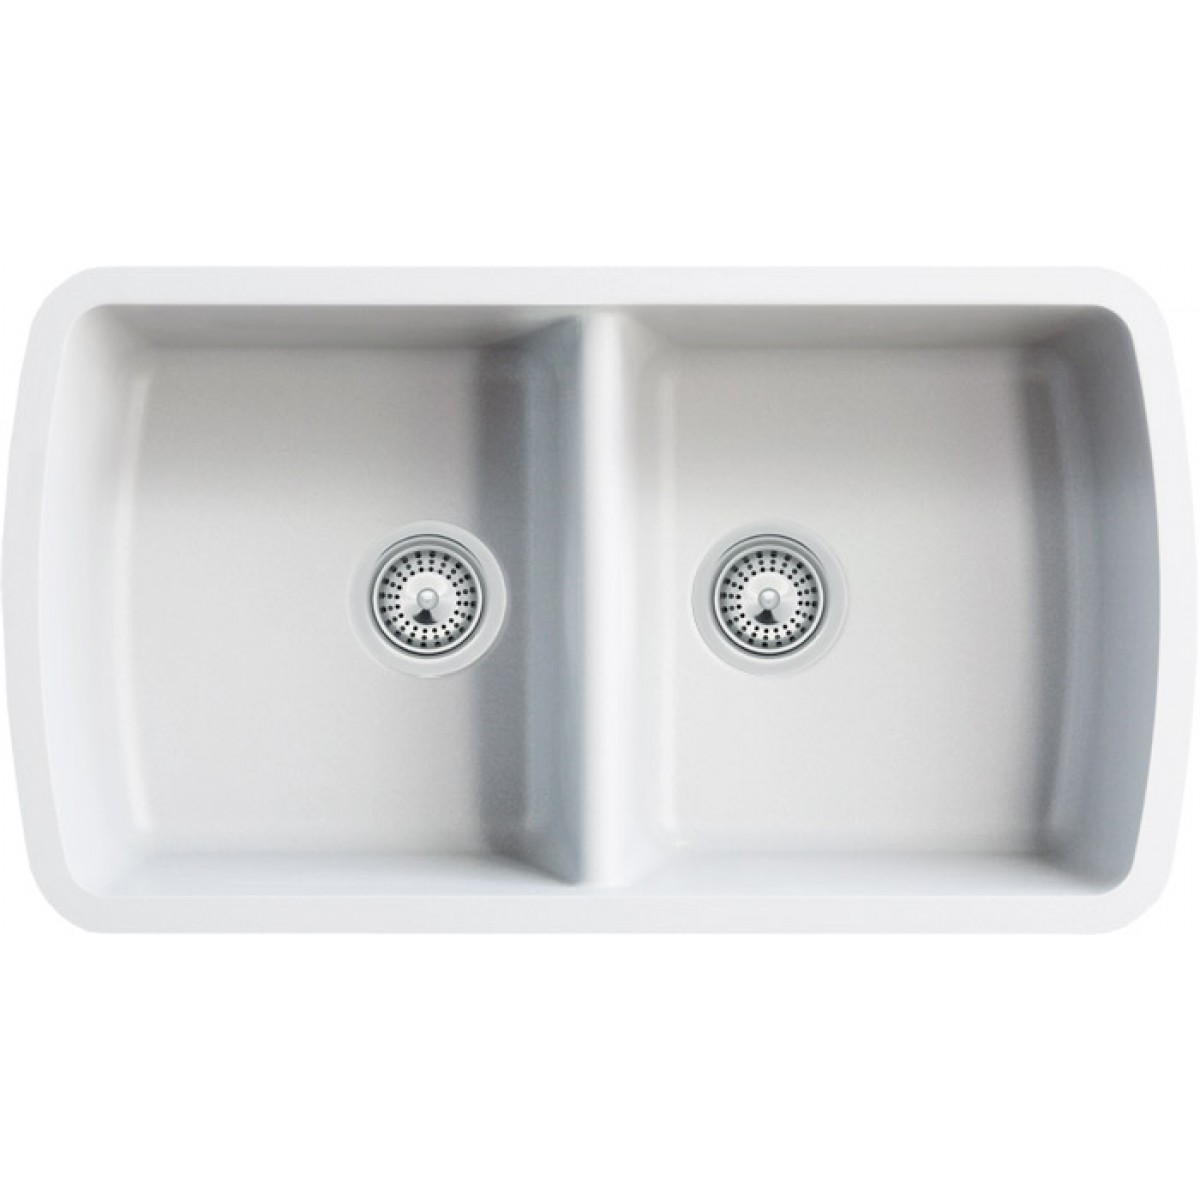 White Quartz Composite 50 Double Bowl Undermount Kitchen Sink 33 1 16 X 18 15 9 3 8 Inch